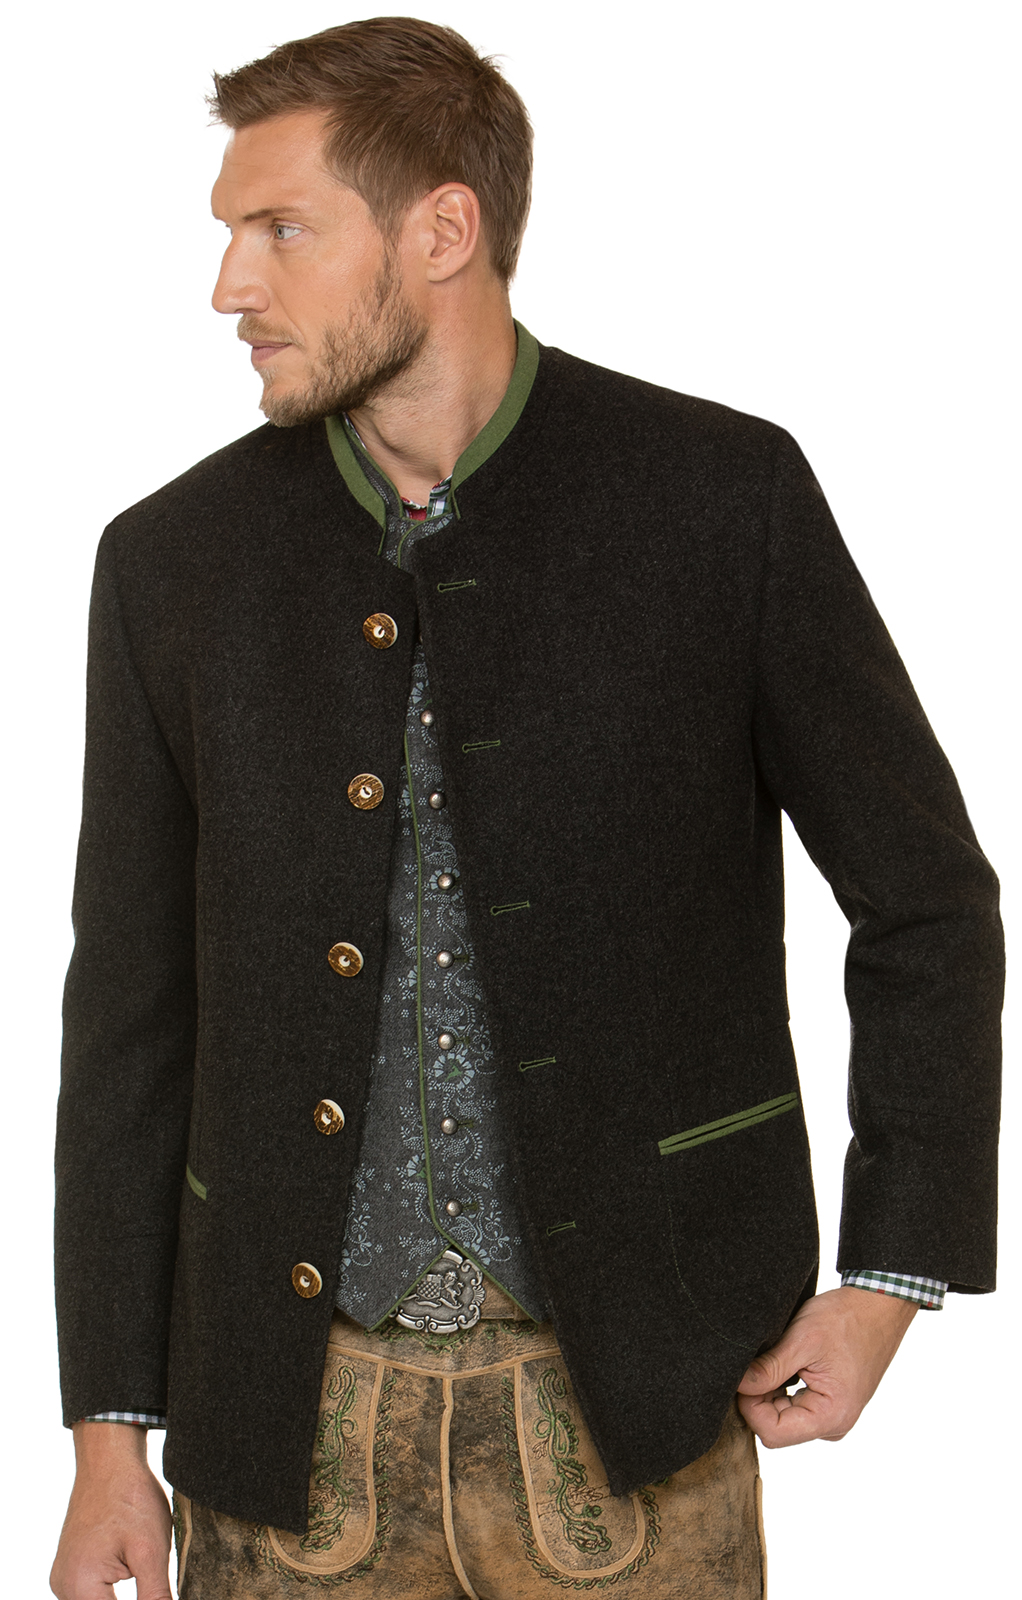 German traditional jacket MAXIMILIAN anthracite von Stockerpoint